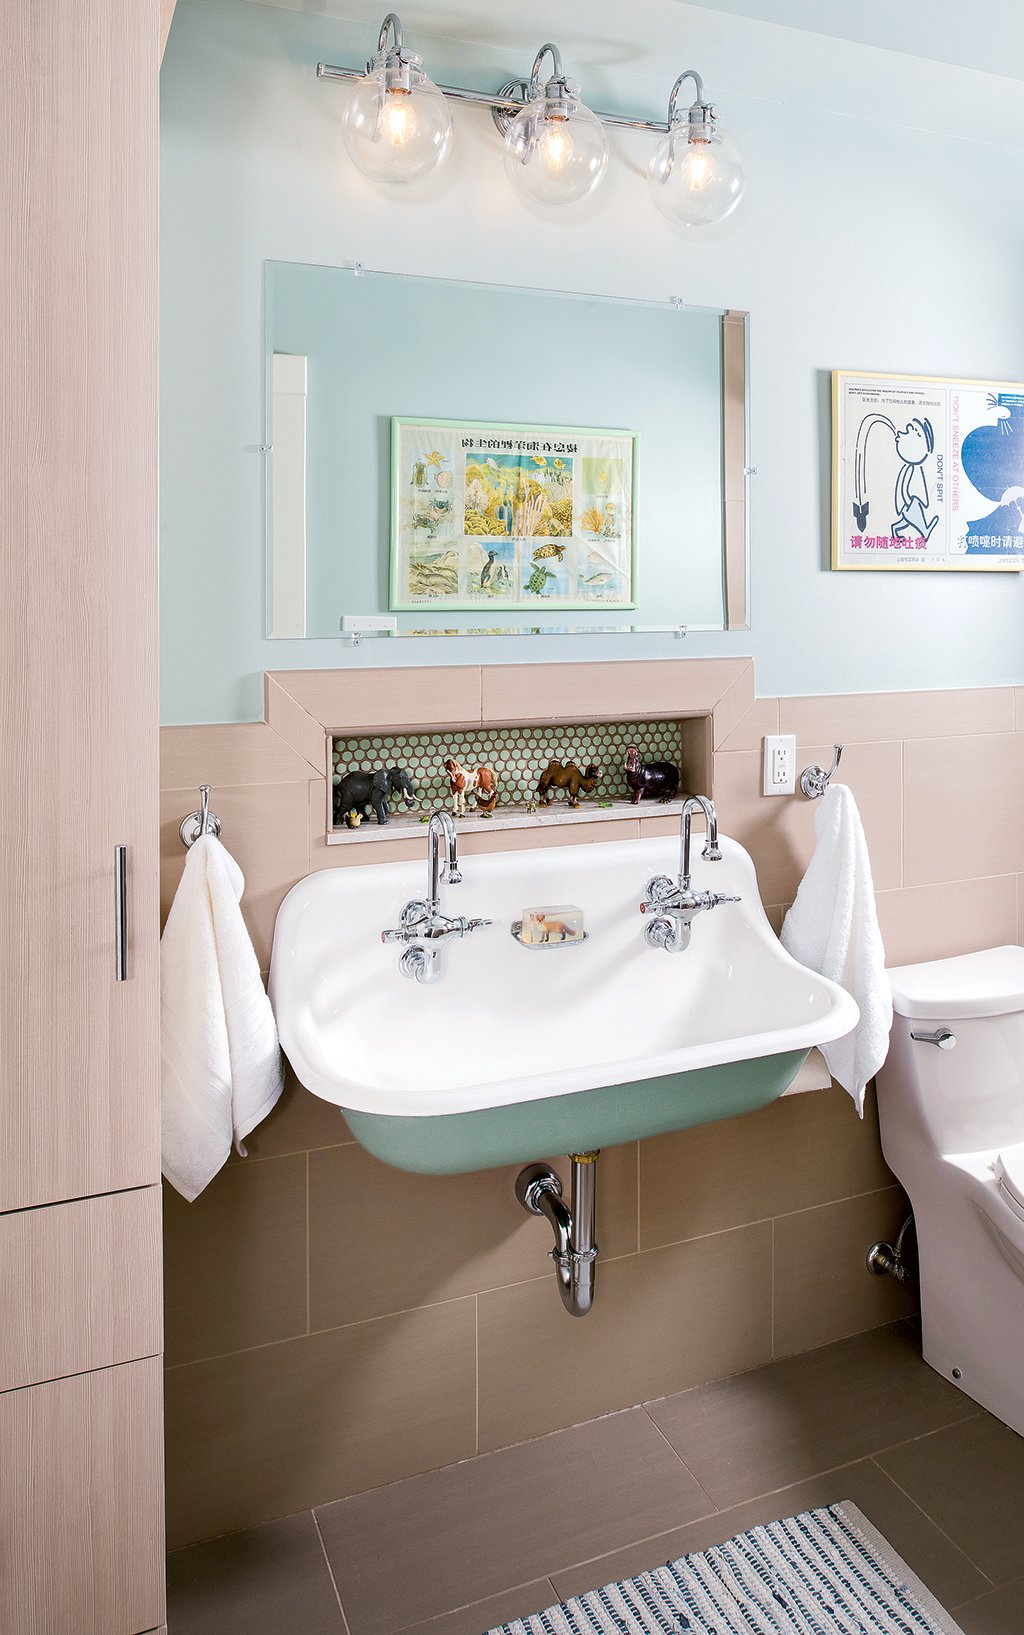 Check Out This Pair of Scandinavian-Inspired Bathroom Remodels